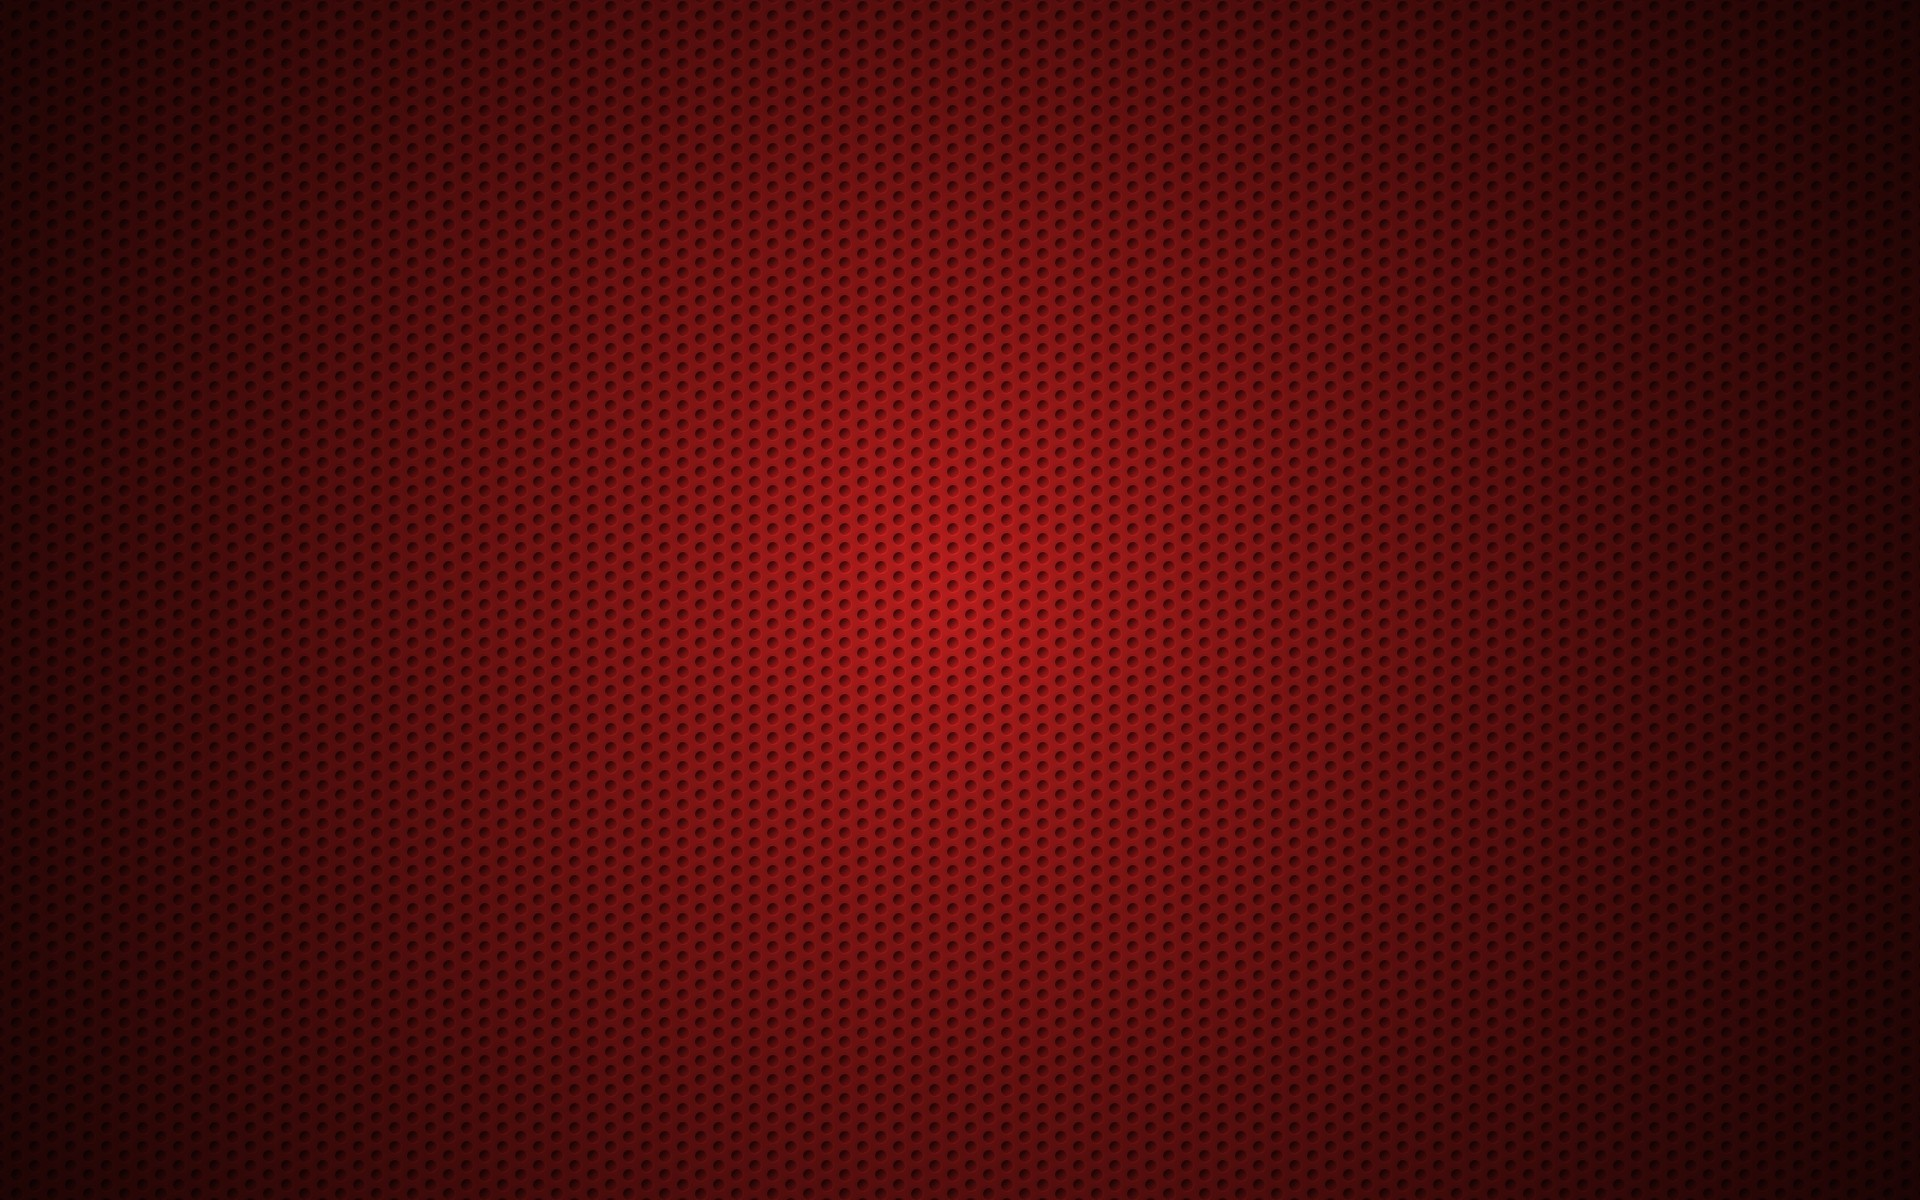 Red Textured Wallpapers WallpaperPulse 1920×1200 Red textured wallpaper (32  Wallpapers) | Adorable